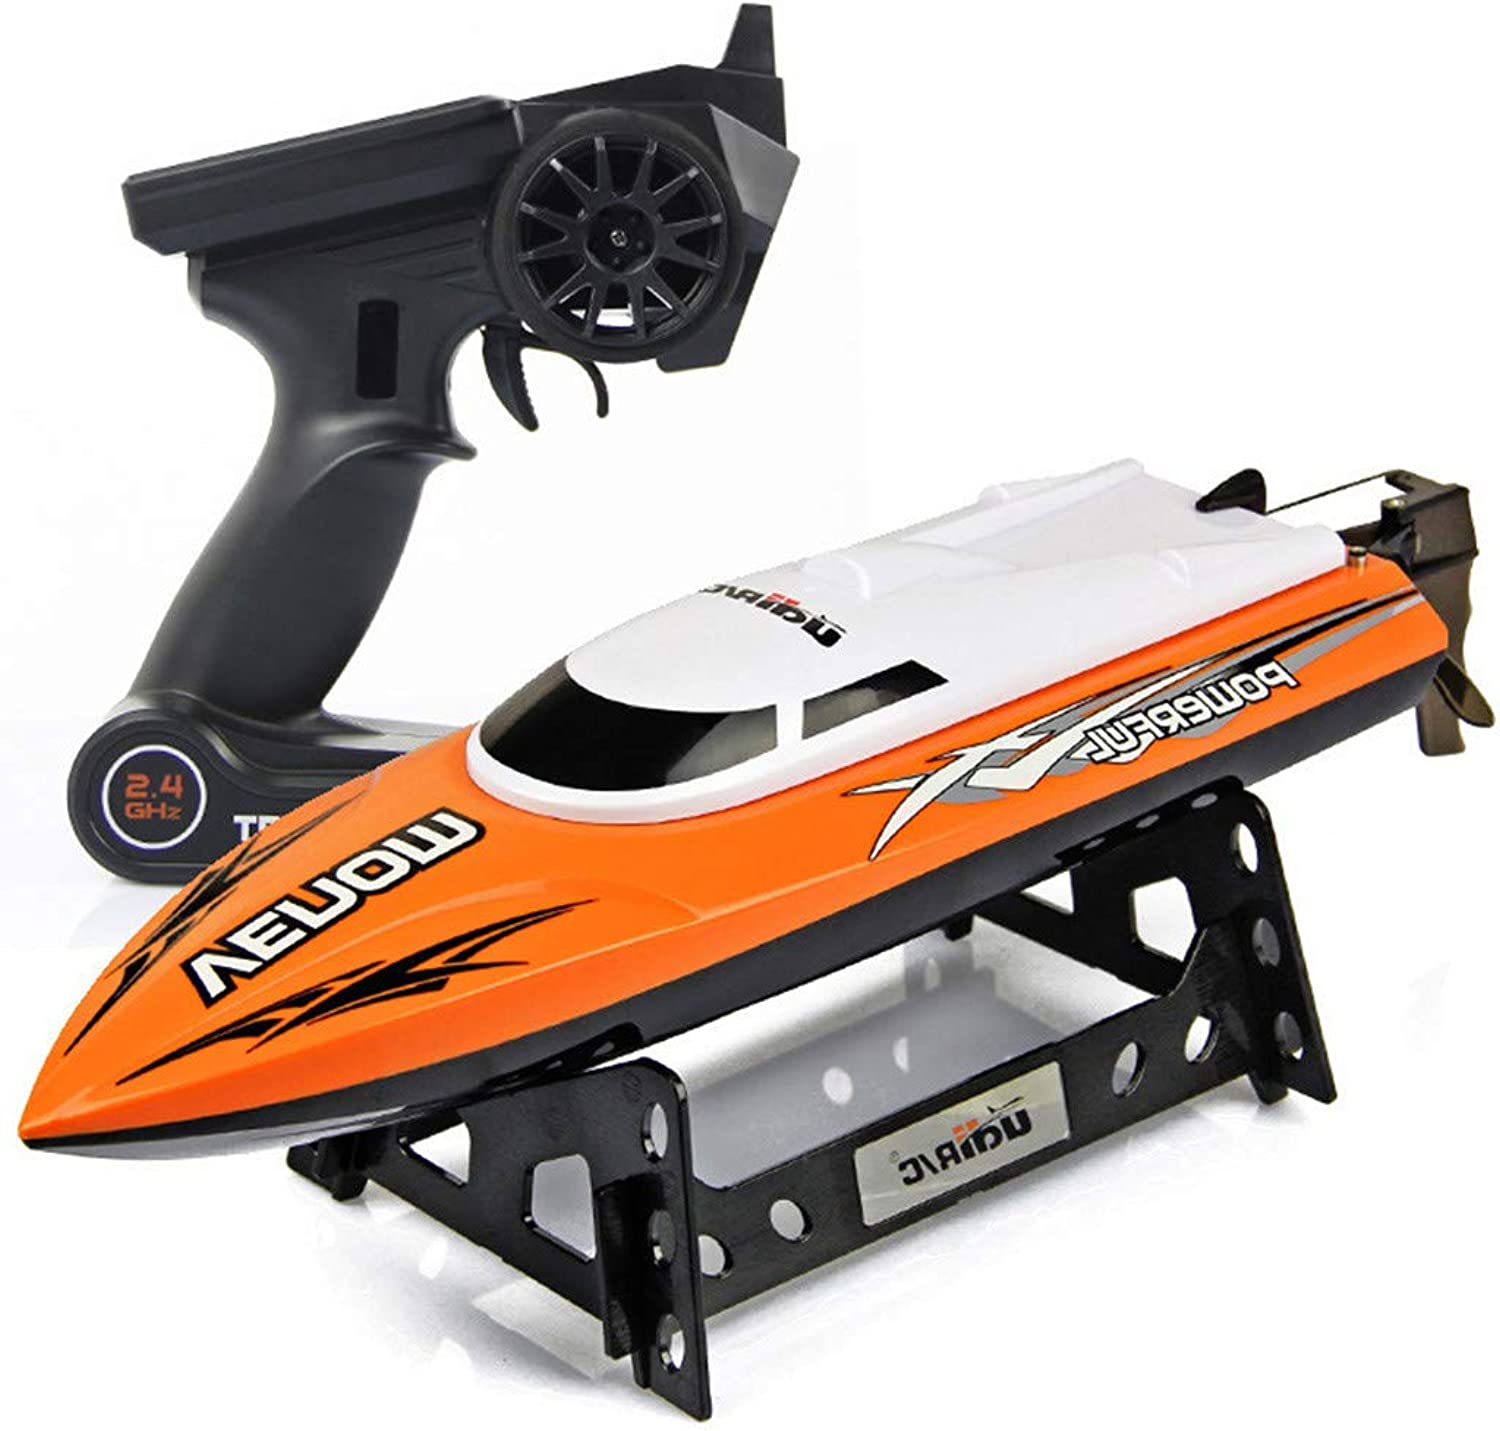 Brisky High Speed RC Boat 2.4GHz 4 Channel Racing Remote Control Boat